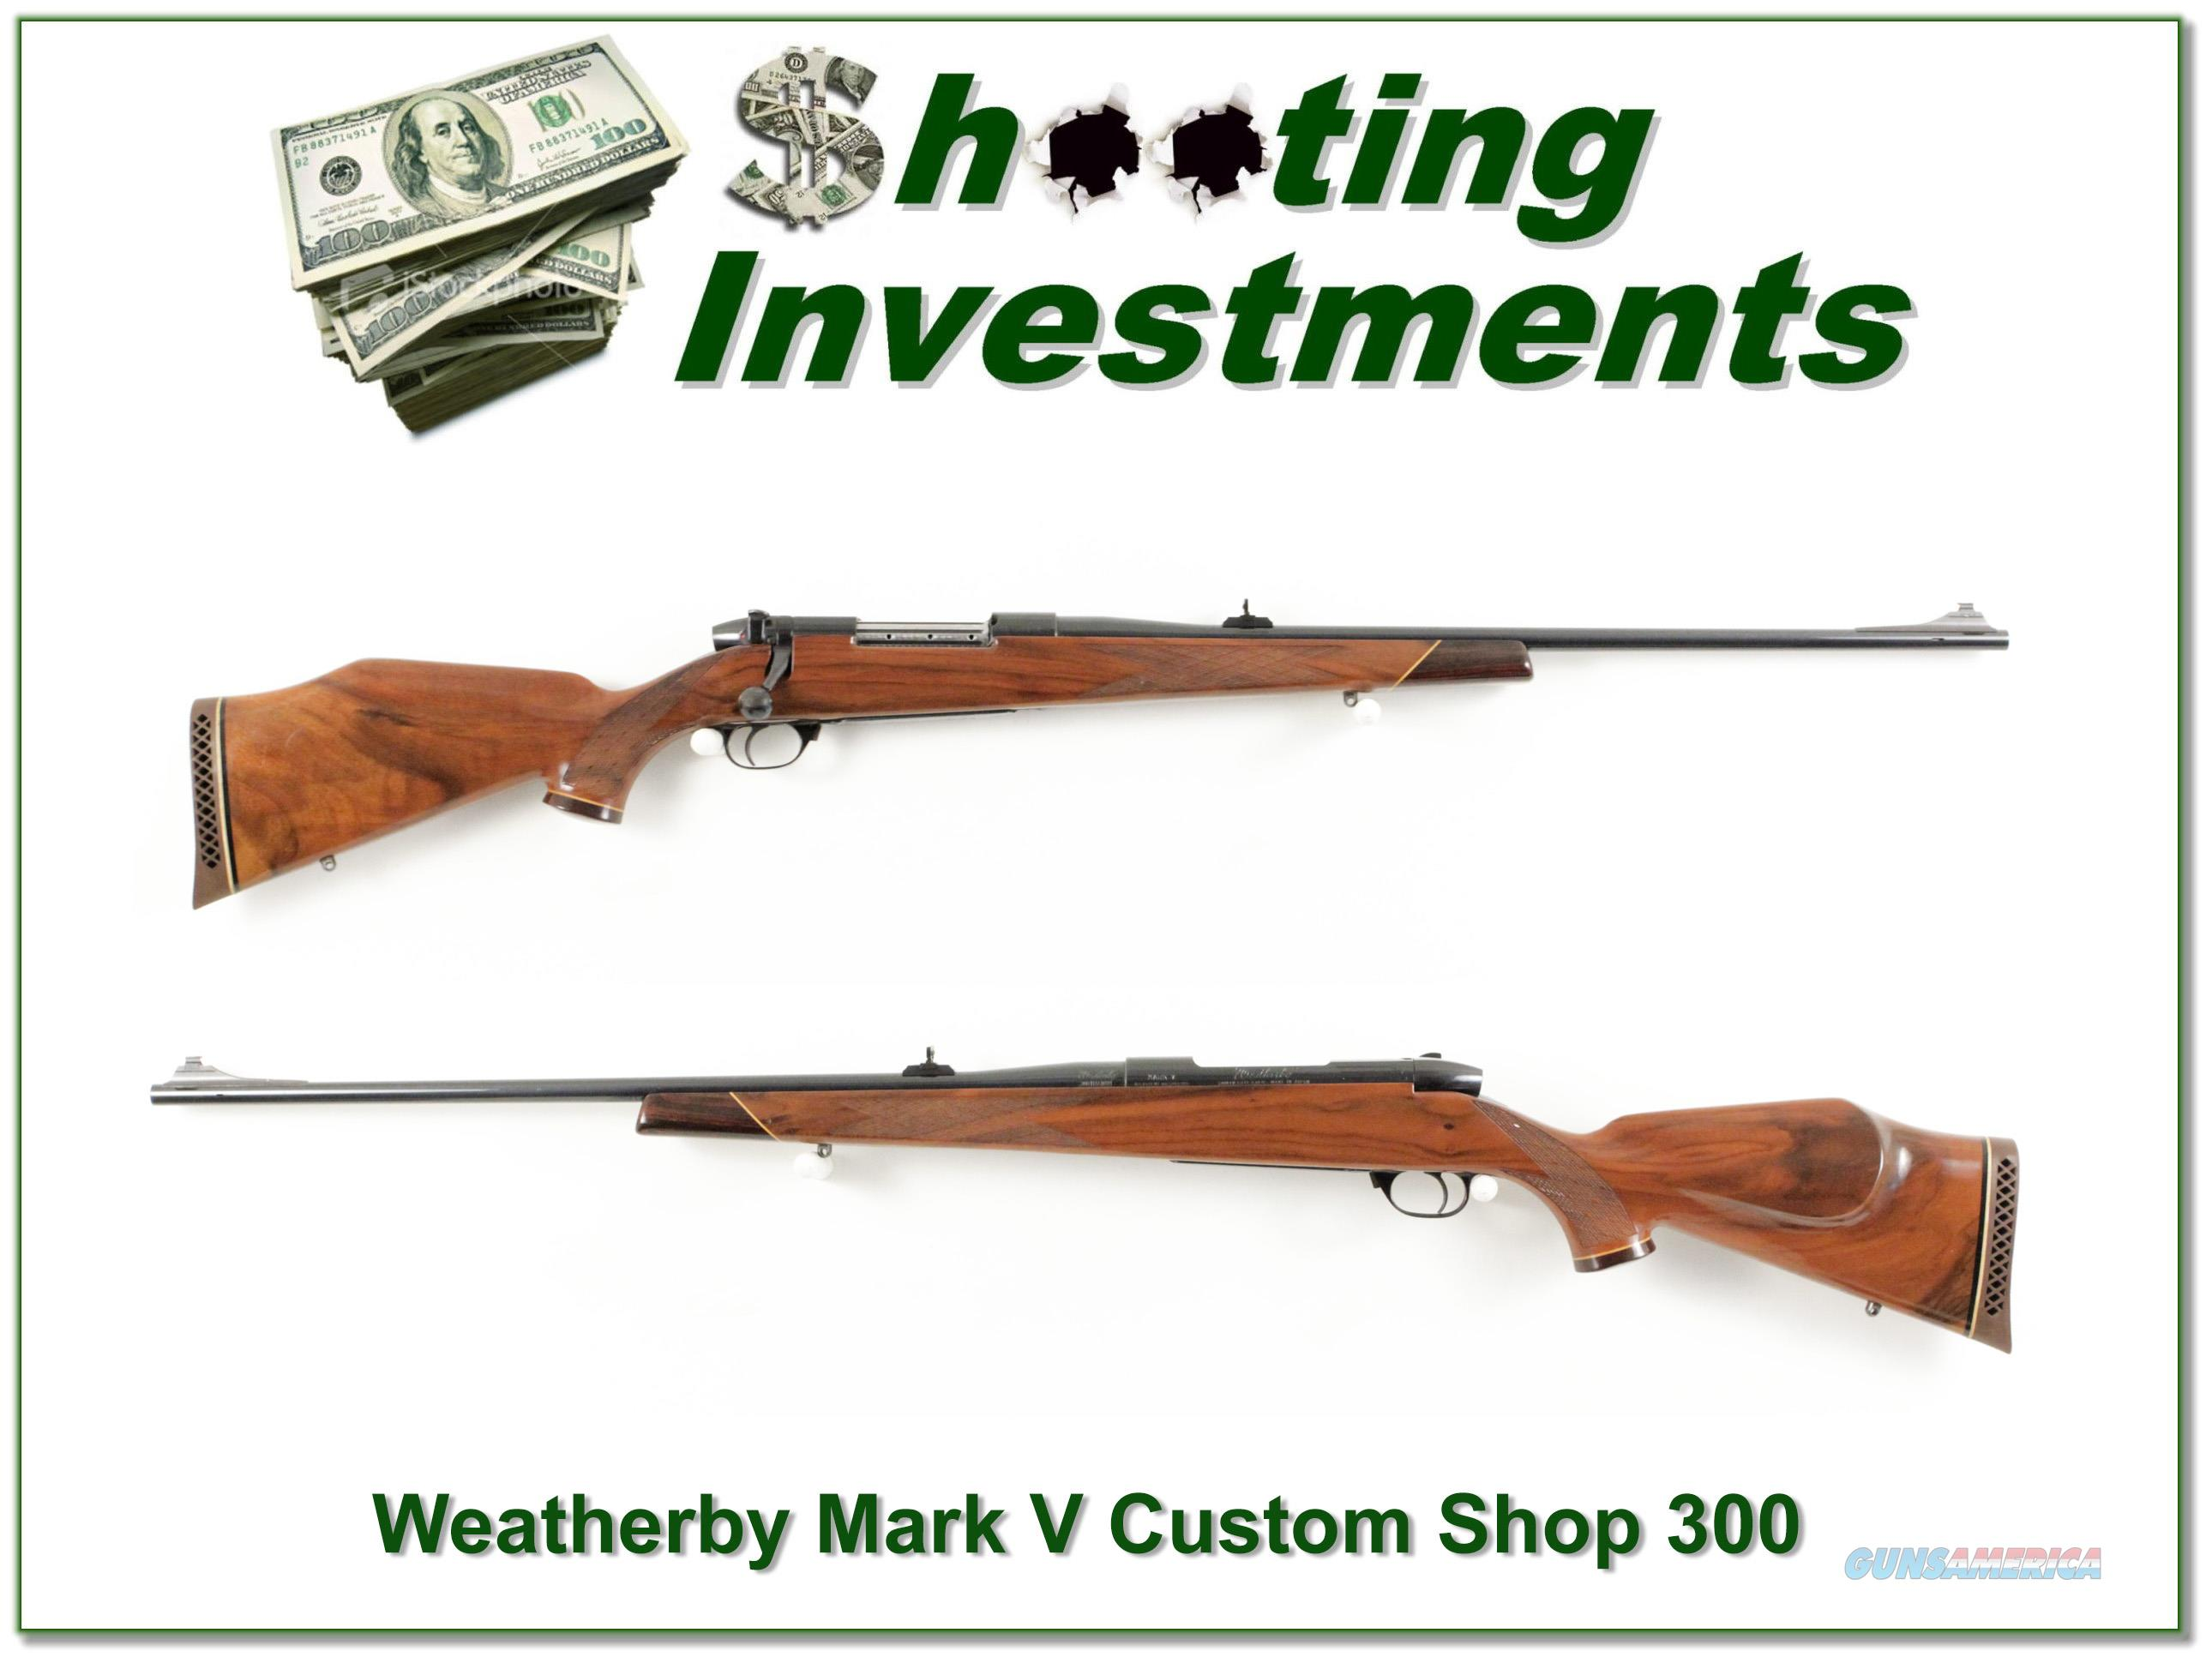 Weatherby Mark V Deluxe Custom Shop 300!  Guns > Rifles > Weatherby Rifles > Sporting